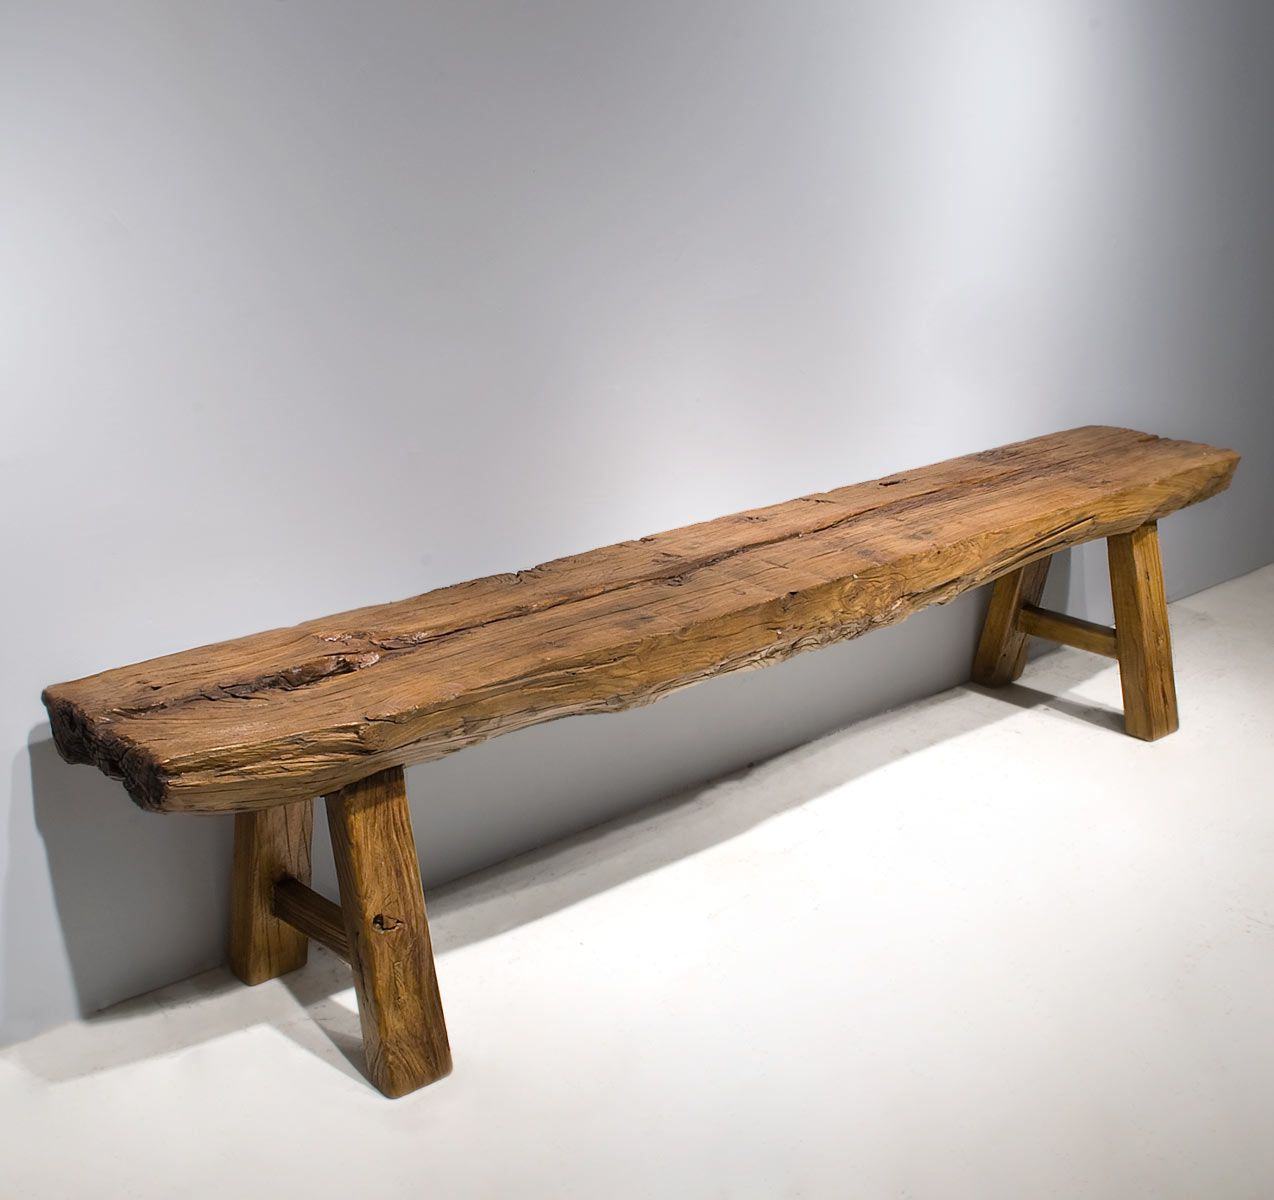 Rustic Benches Light Bench Furniture